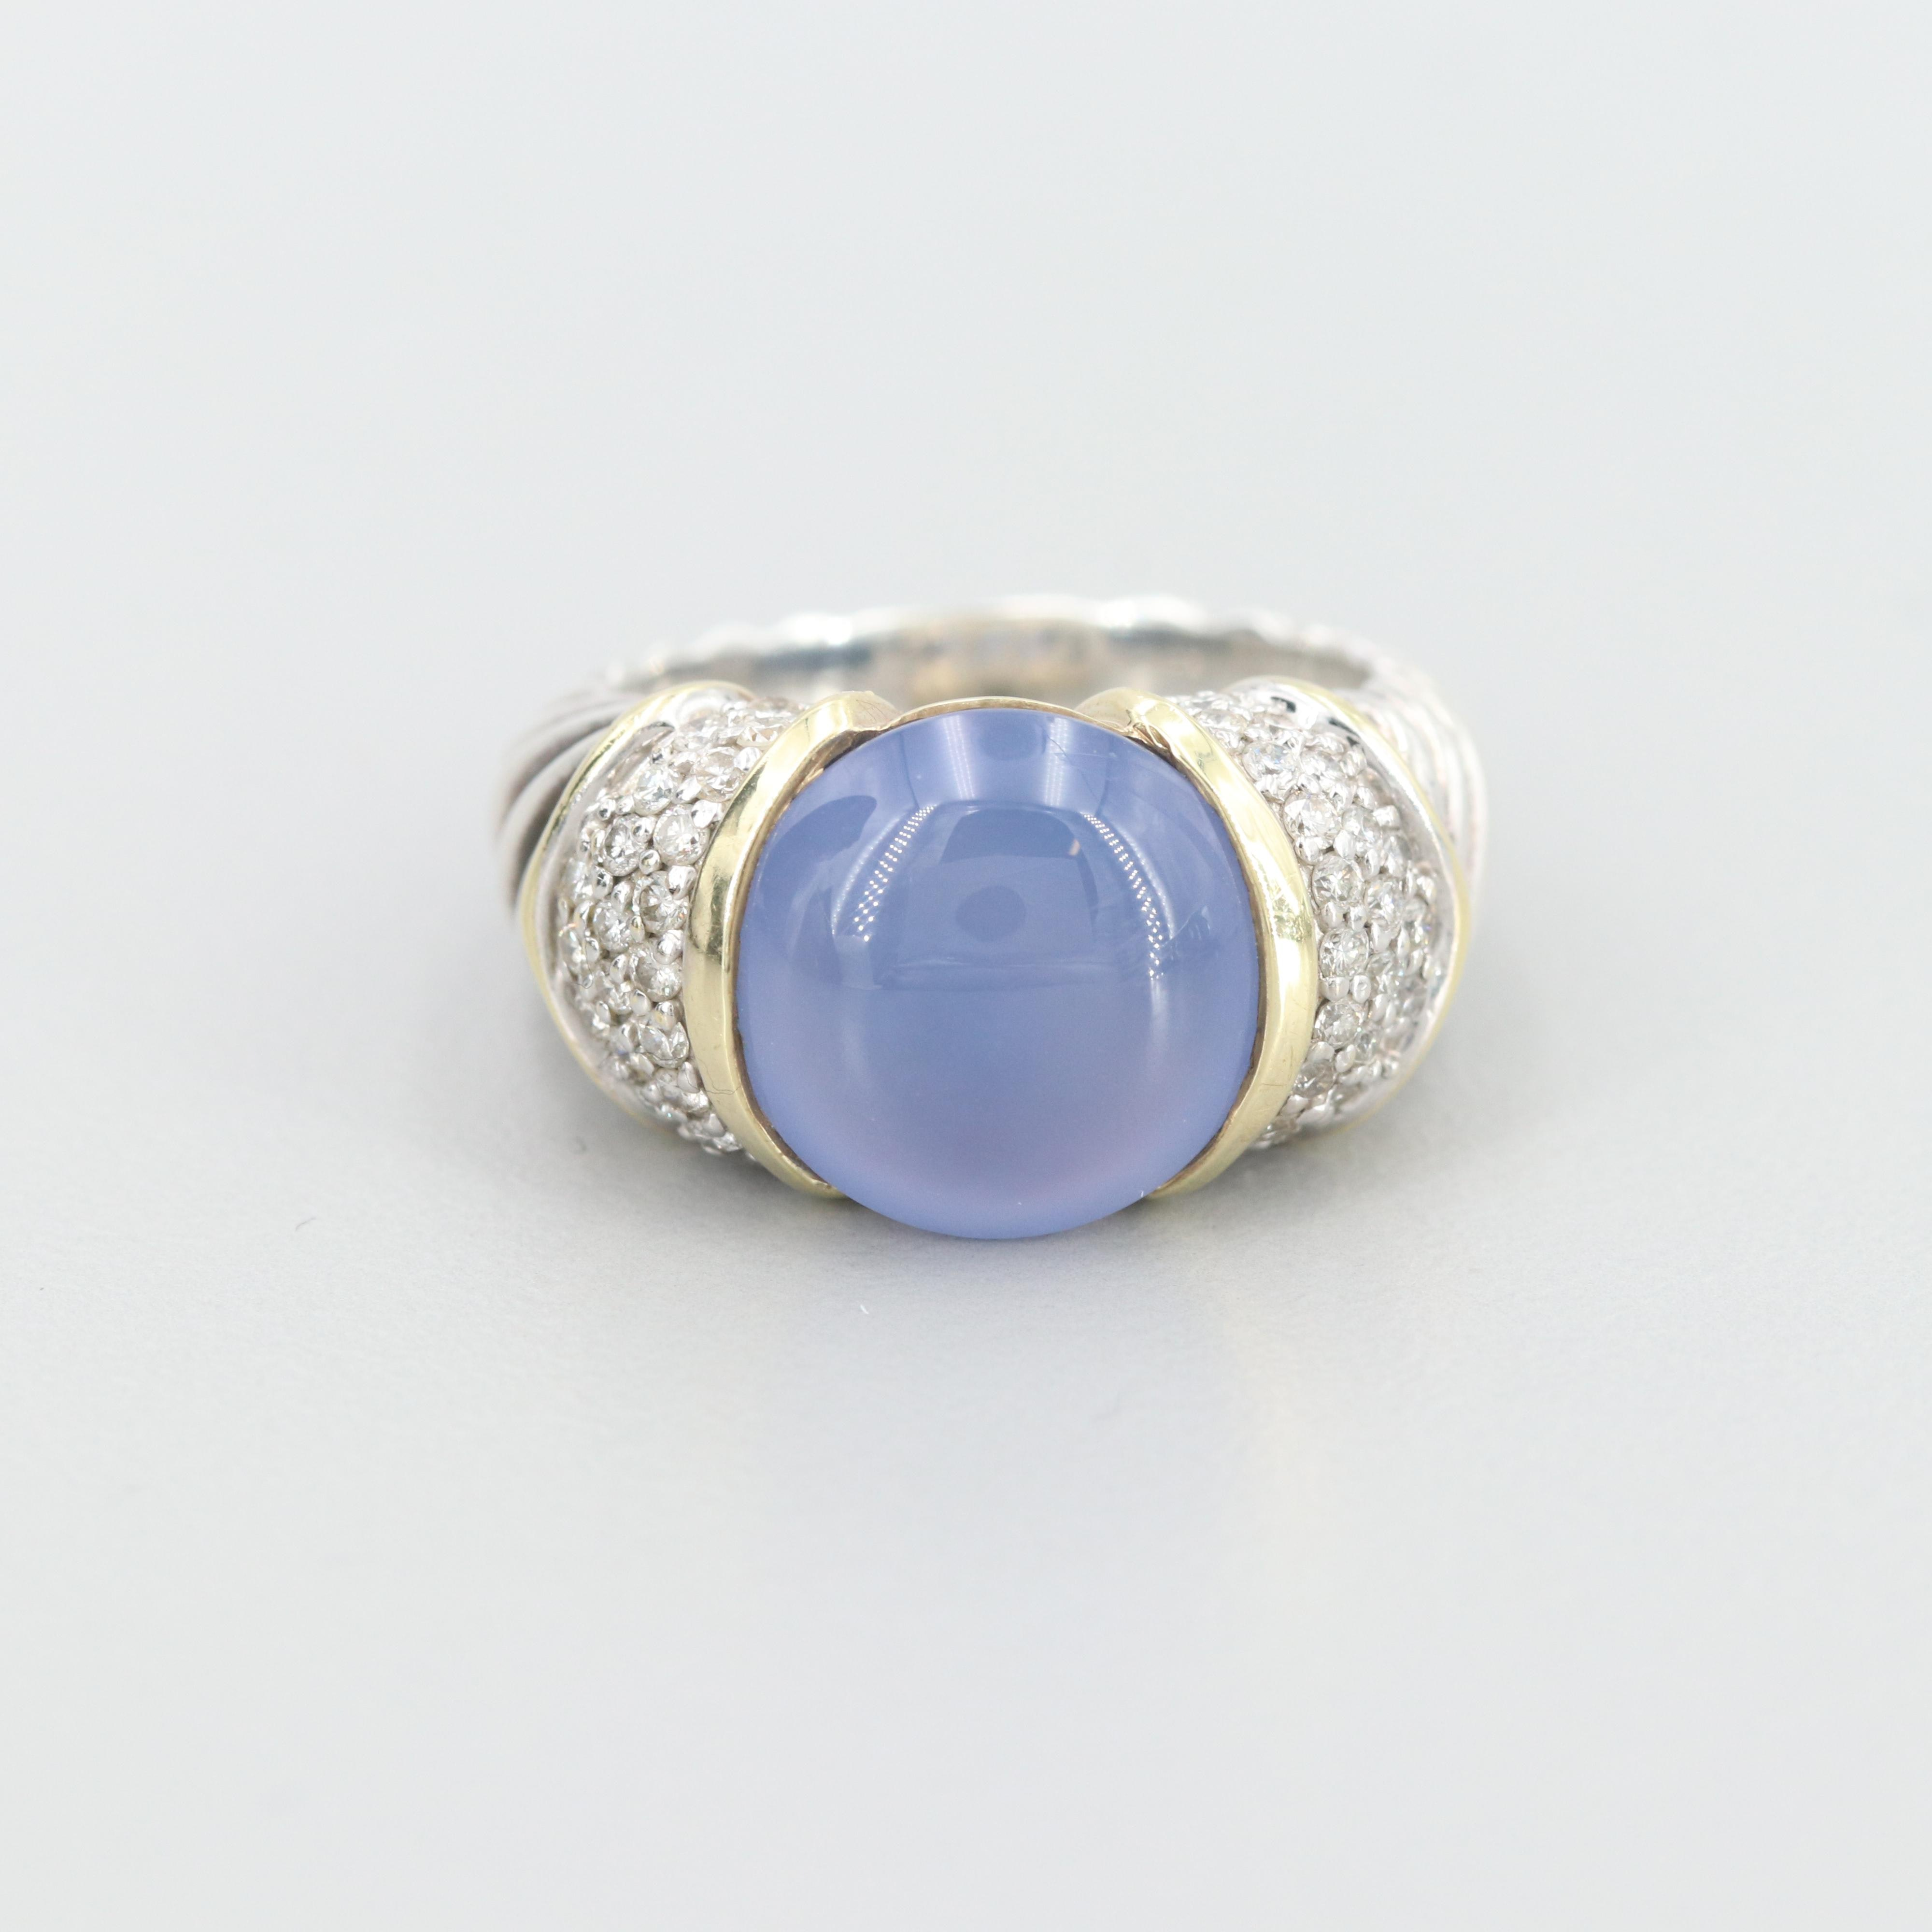 David Yurman Sterling Blue Chalcedony and Diamond Ring with 18K Gold Accents